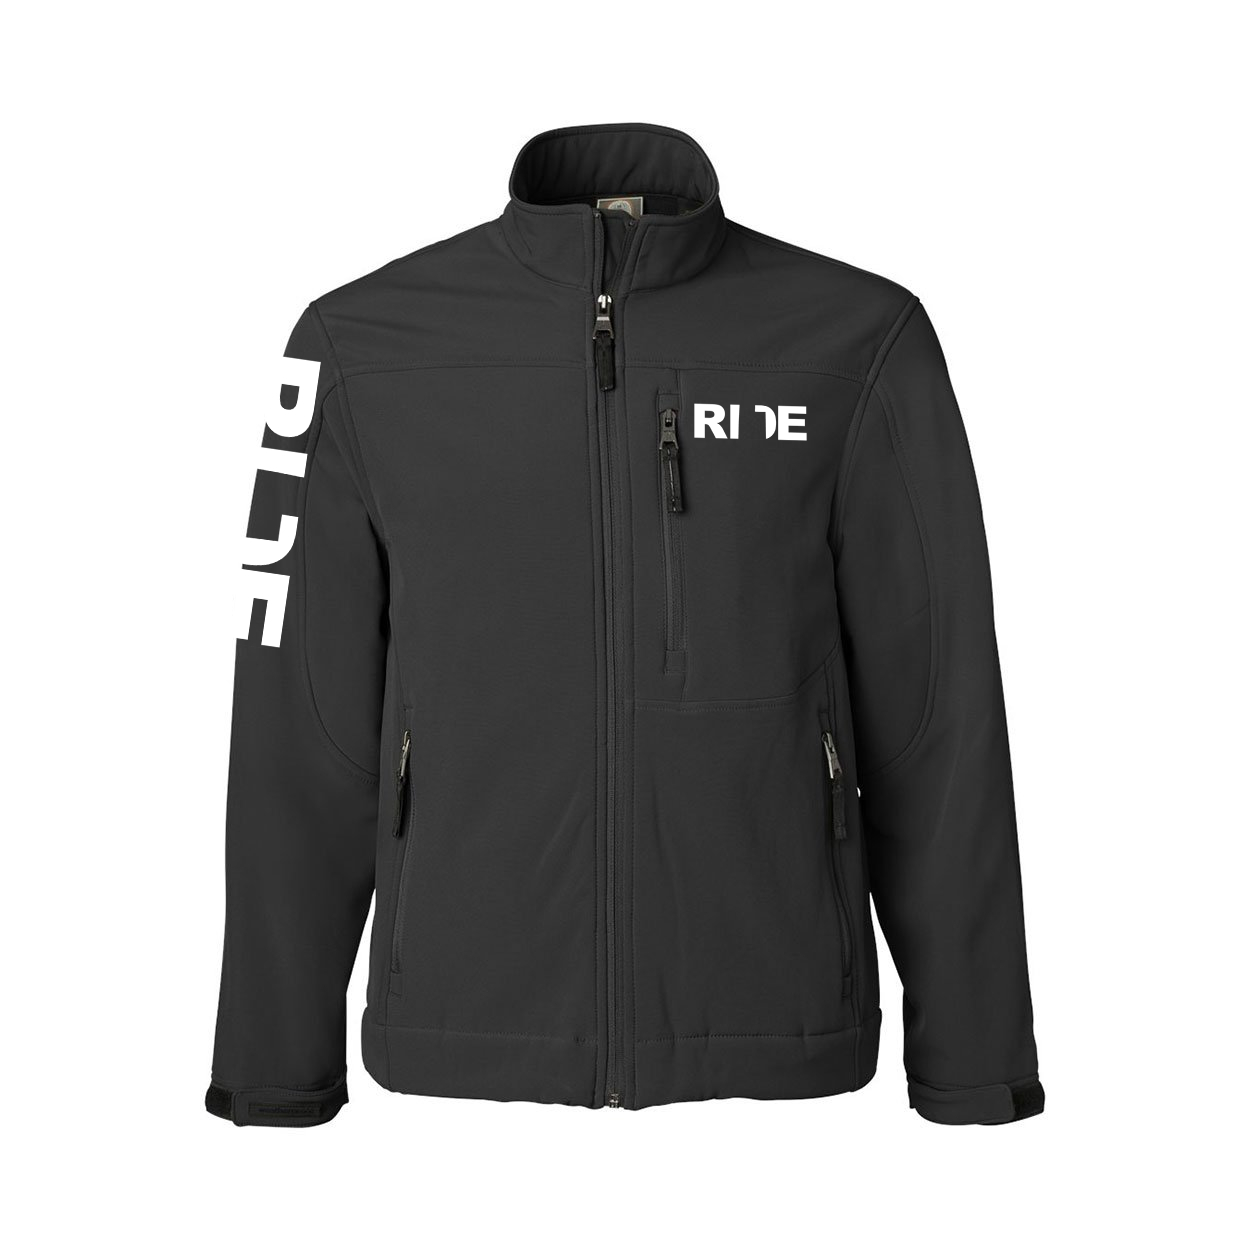 Ride Utah Classic Soft Shell Weatherproof Jacket (White Logo)